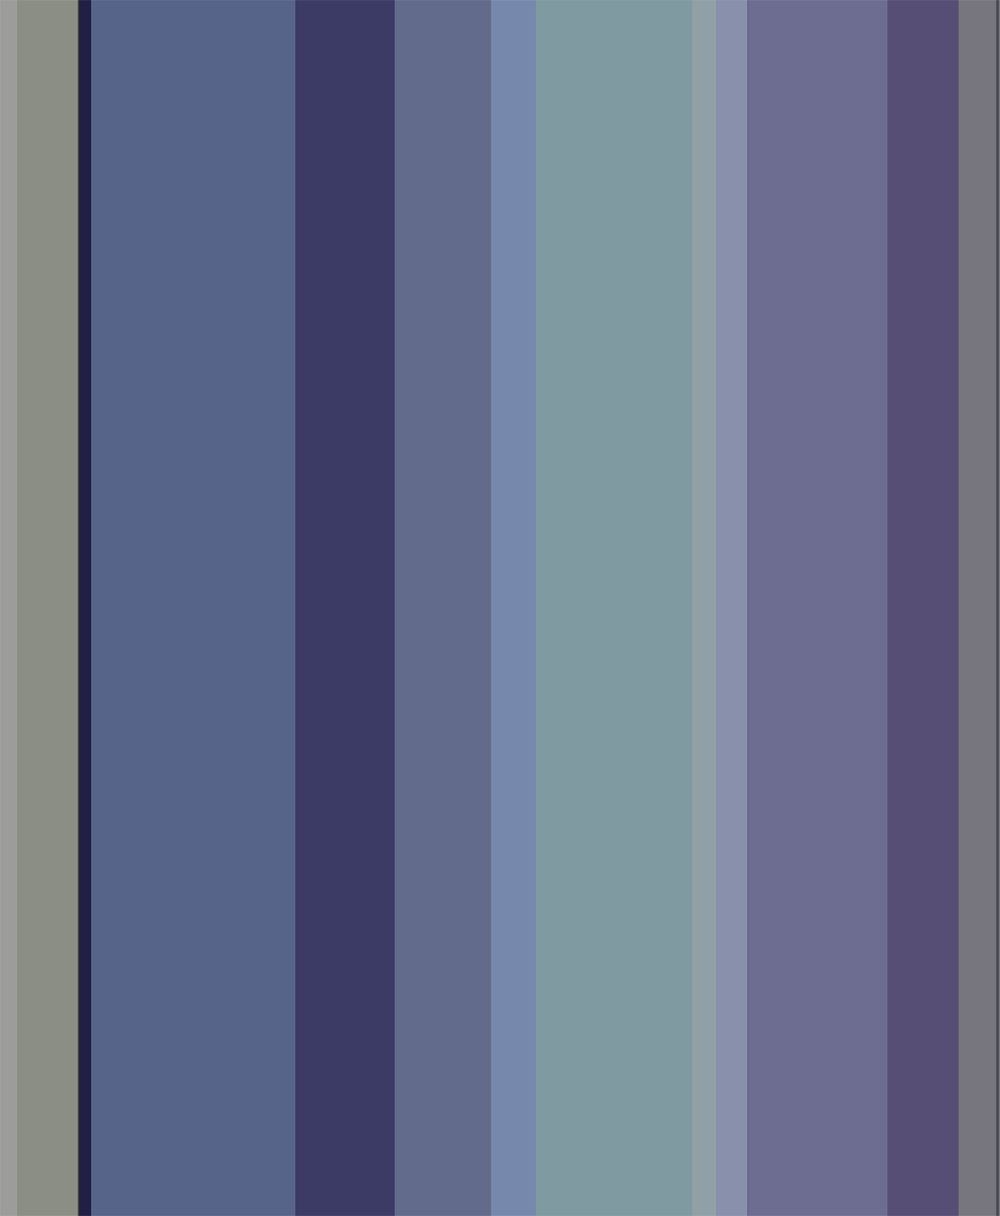 colours-20180521-sky-2.png